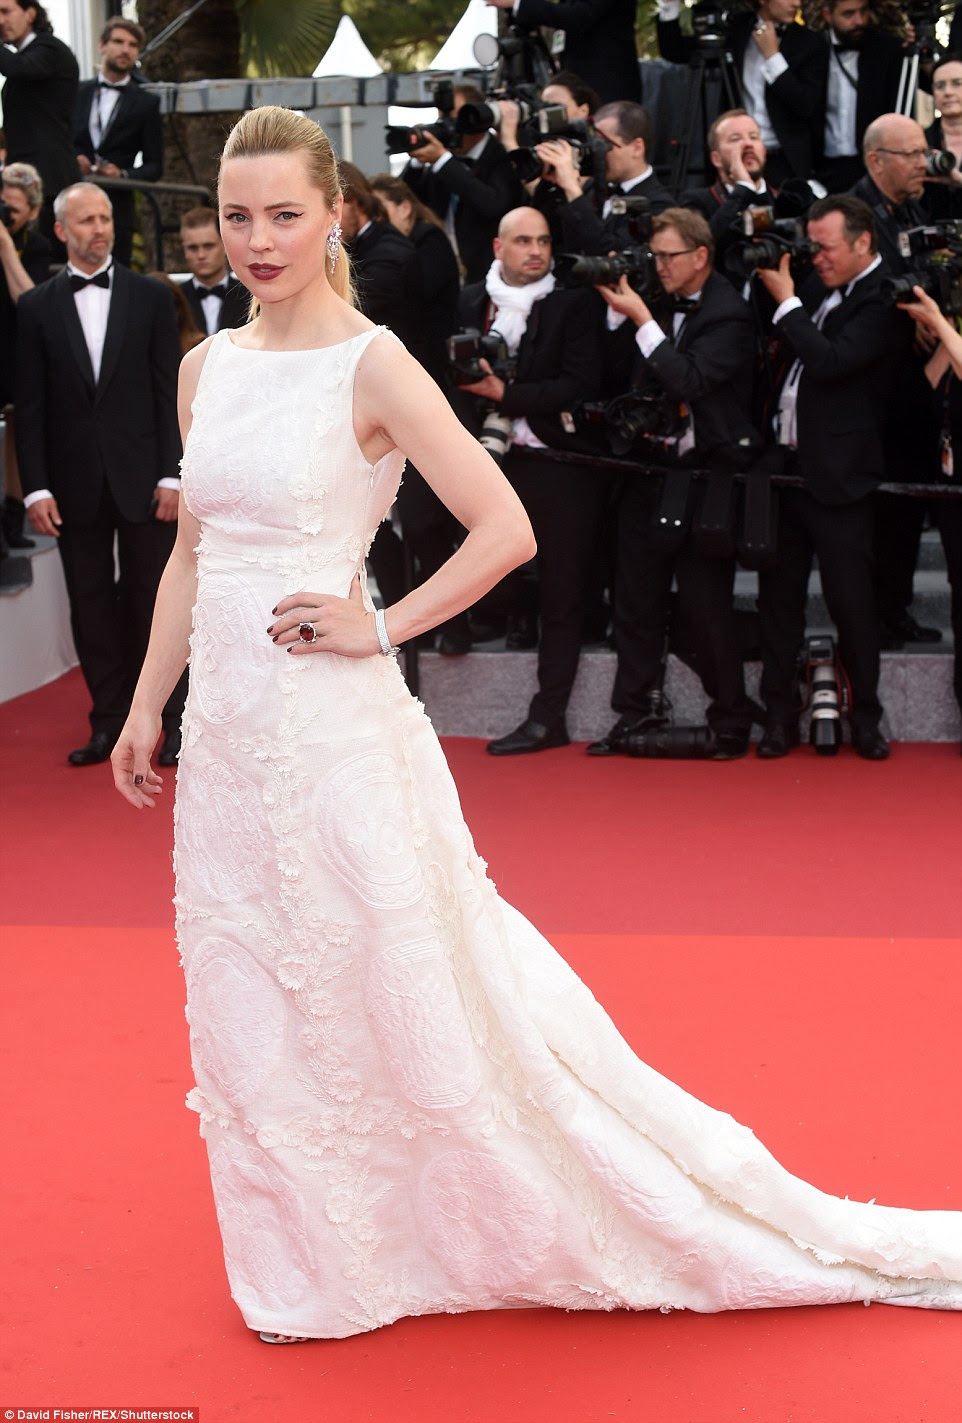 Making waves on the other side of the world: Aussie actress Melissa George wowed in white